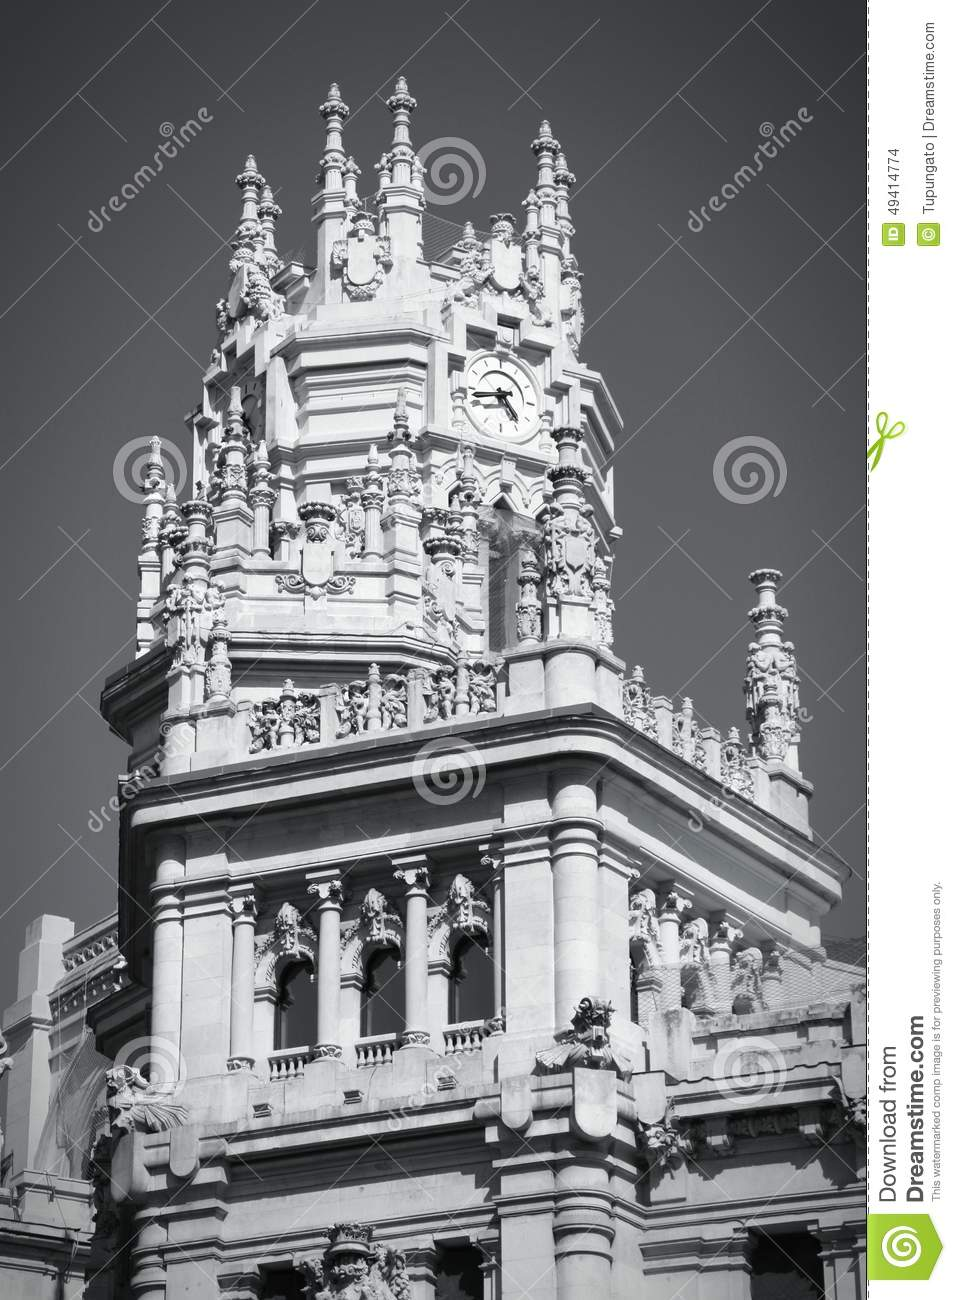 Download Cibeles, Madrid stockfoto. Bild von palast, historisch - 49414774